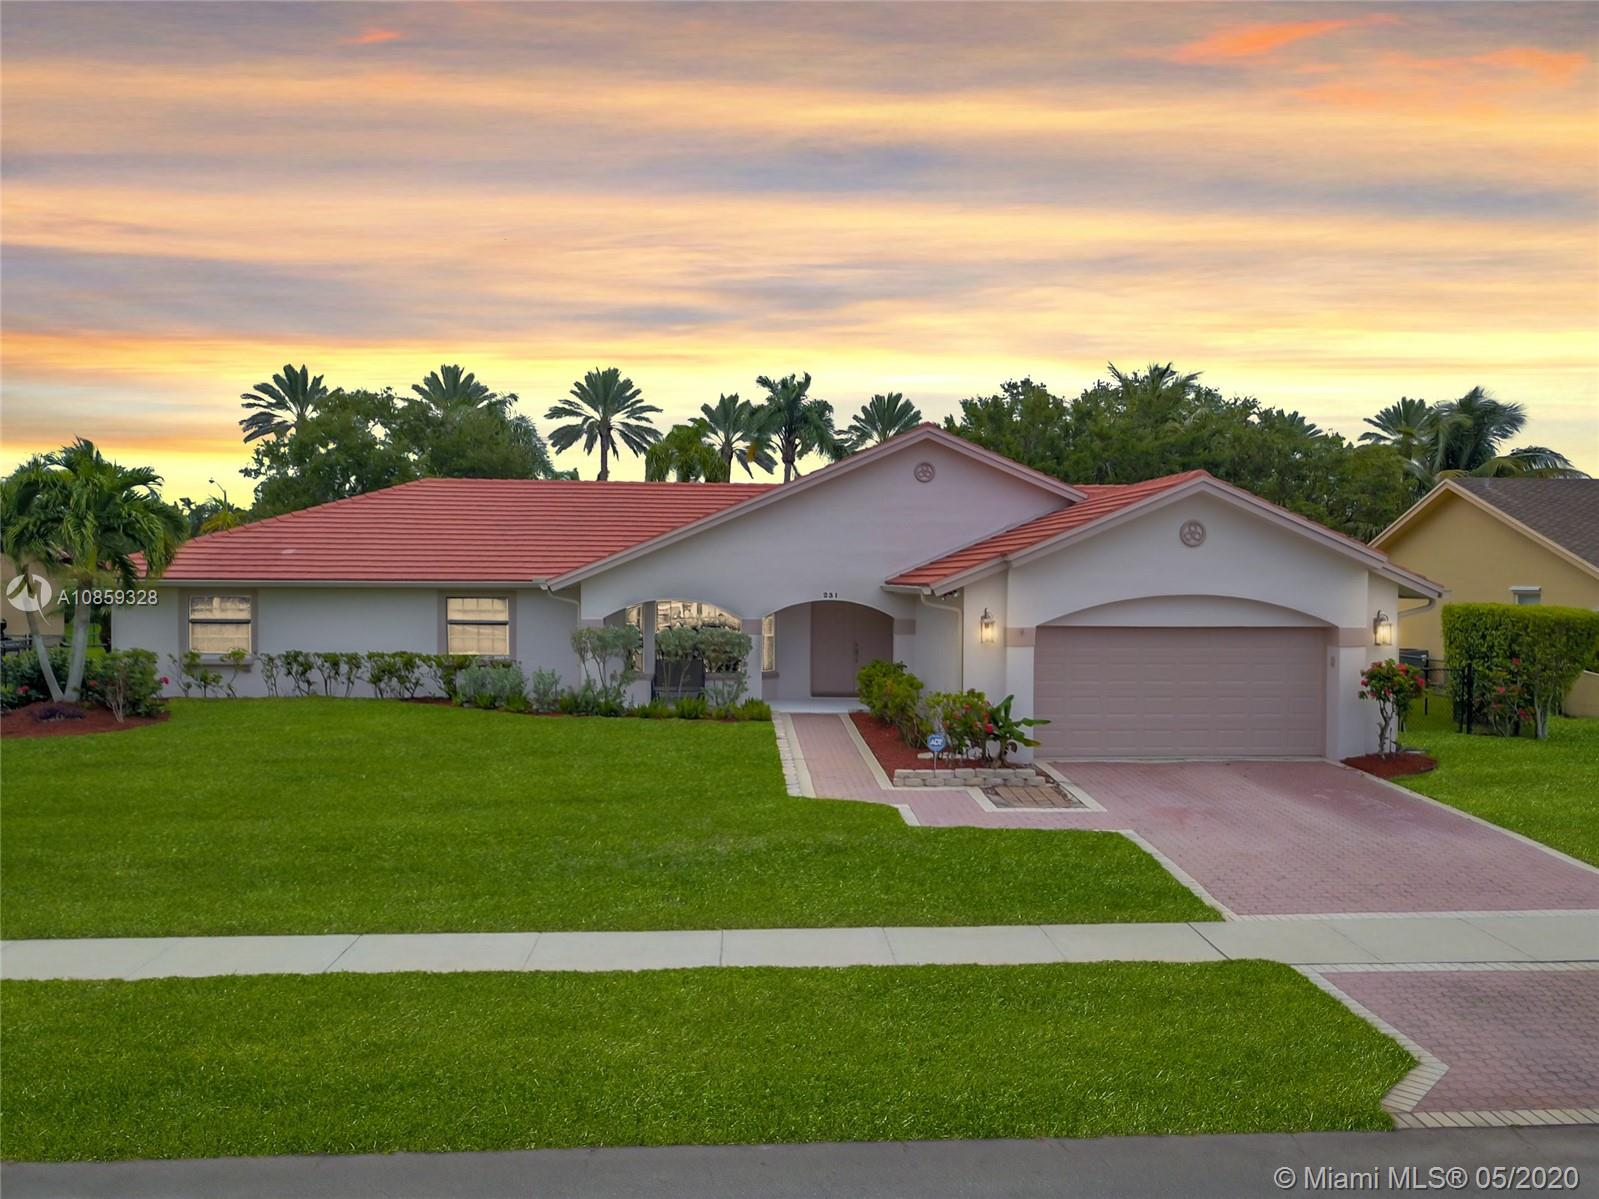 This fabulous 4 bed / 2 bath home in the Pasadena 2 community of Chapel Trail in West Pembroke Pines is ready for your family. An beautiful free-form pool and outdoor patio area with no backdoor neighbors provides the right amount of privacy. Inside the house, wall-to-wall tile compliments the updated kitchen, complete with stainless steel appliances, granite countertops, and a kitchen counter area with extra storage while separate living and family rooms provide plenty of space for the entire family. Walk-in closets in 3 of the bedrooms and a master bathroom with separate tub and shower are a nice feature as well. Complete hurricane protection via panel shutters top off this move-in ready gem.